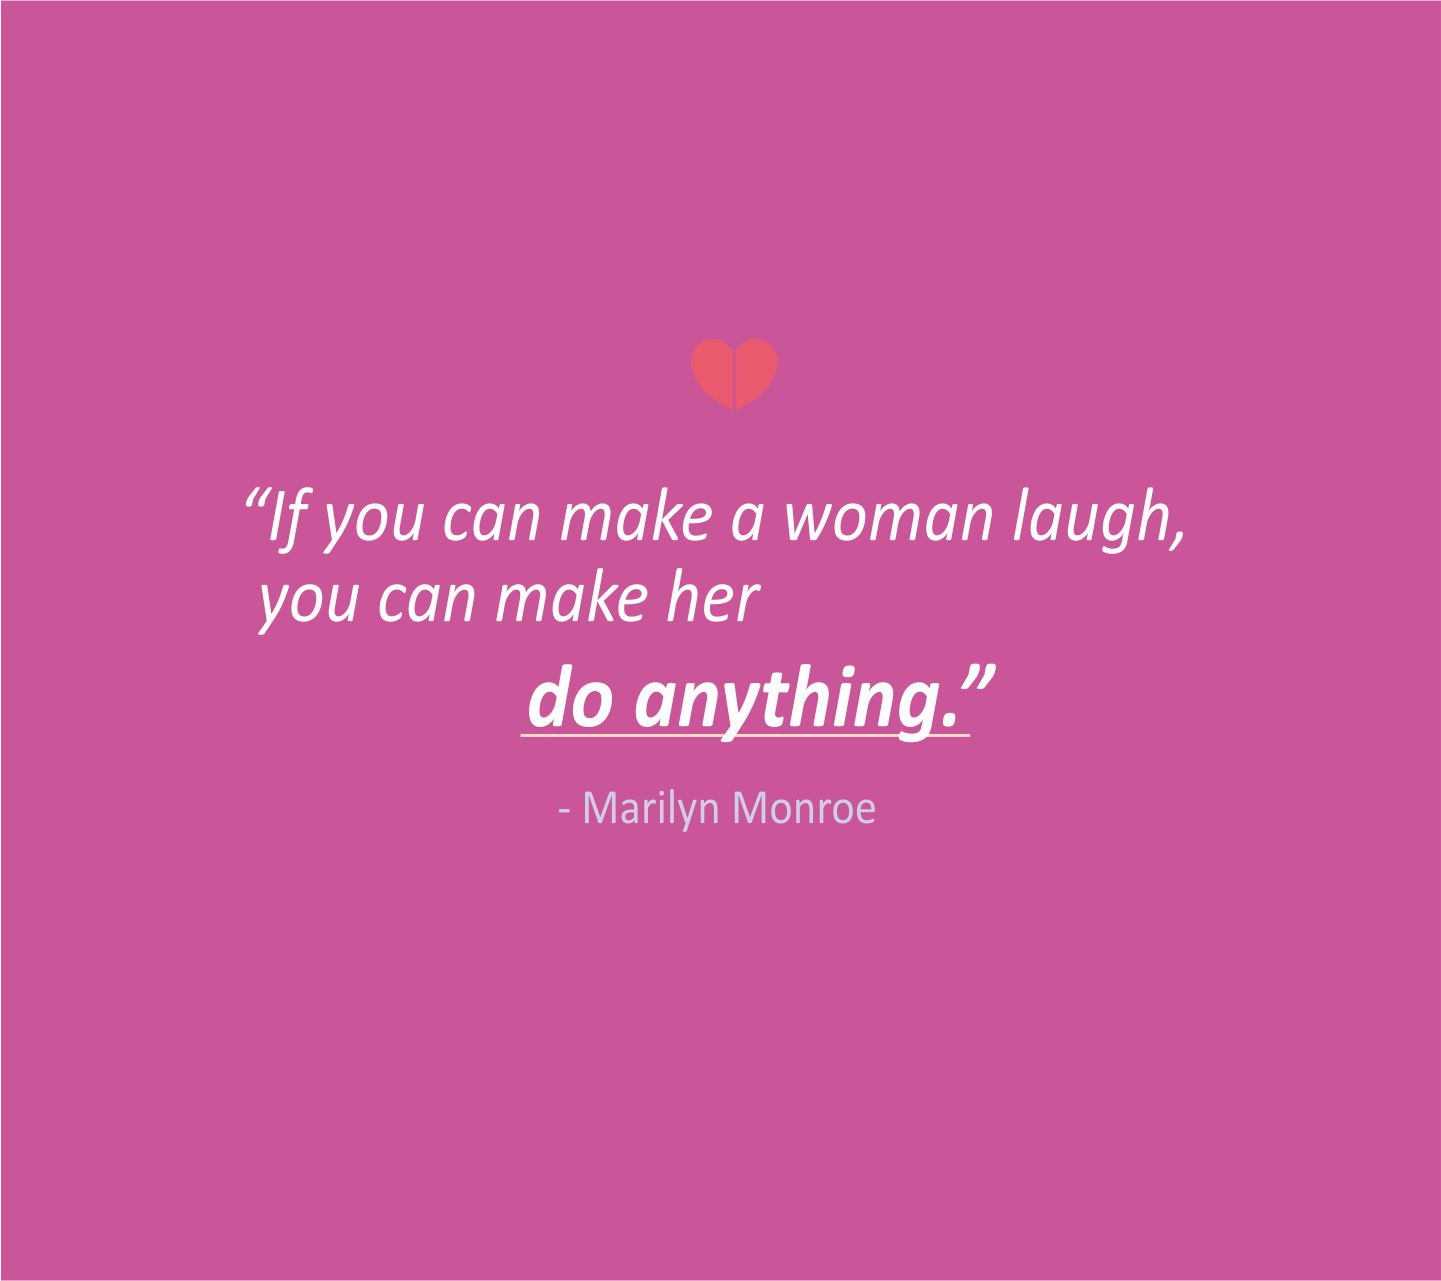 Quotes About Love: Her Laugh Quotes. QuotesGram